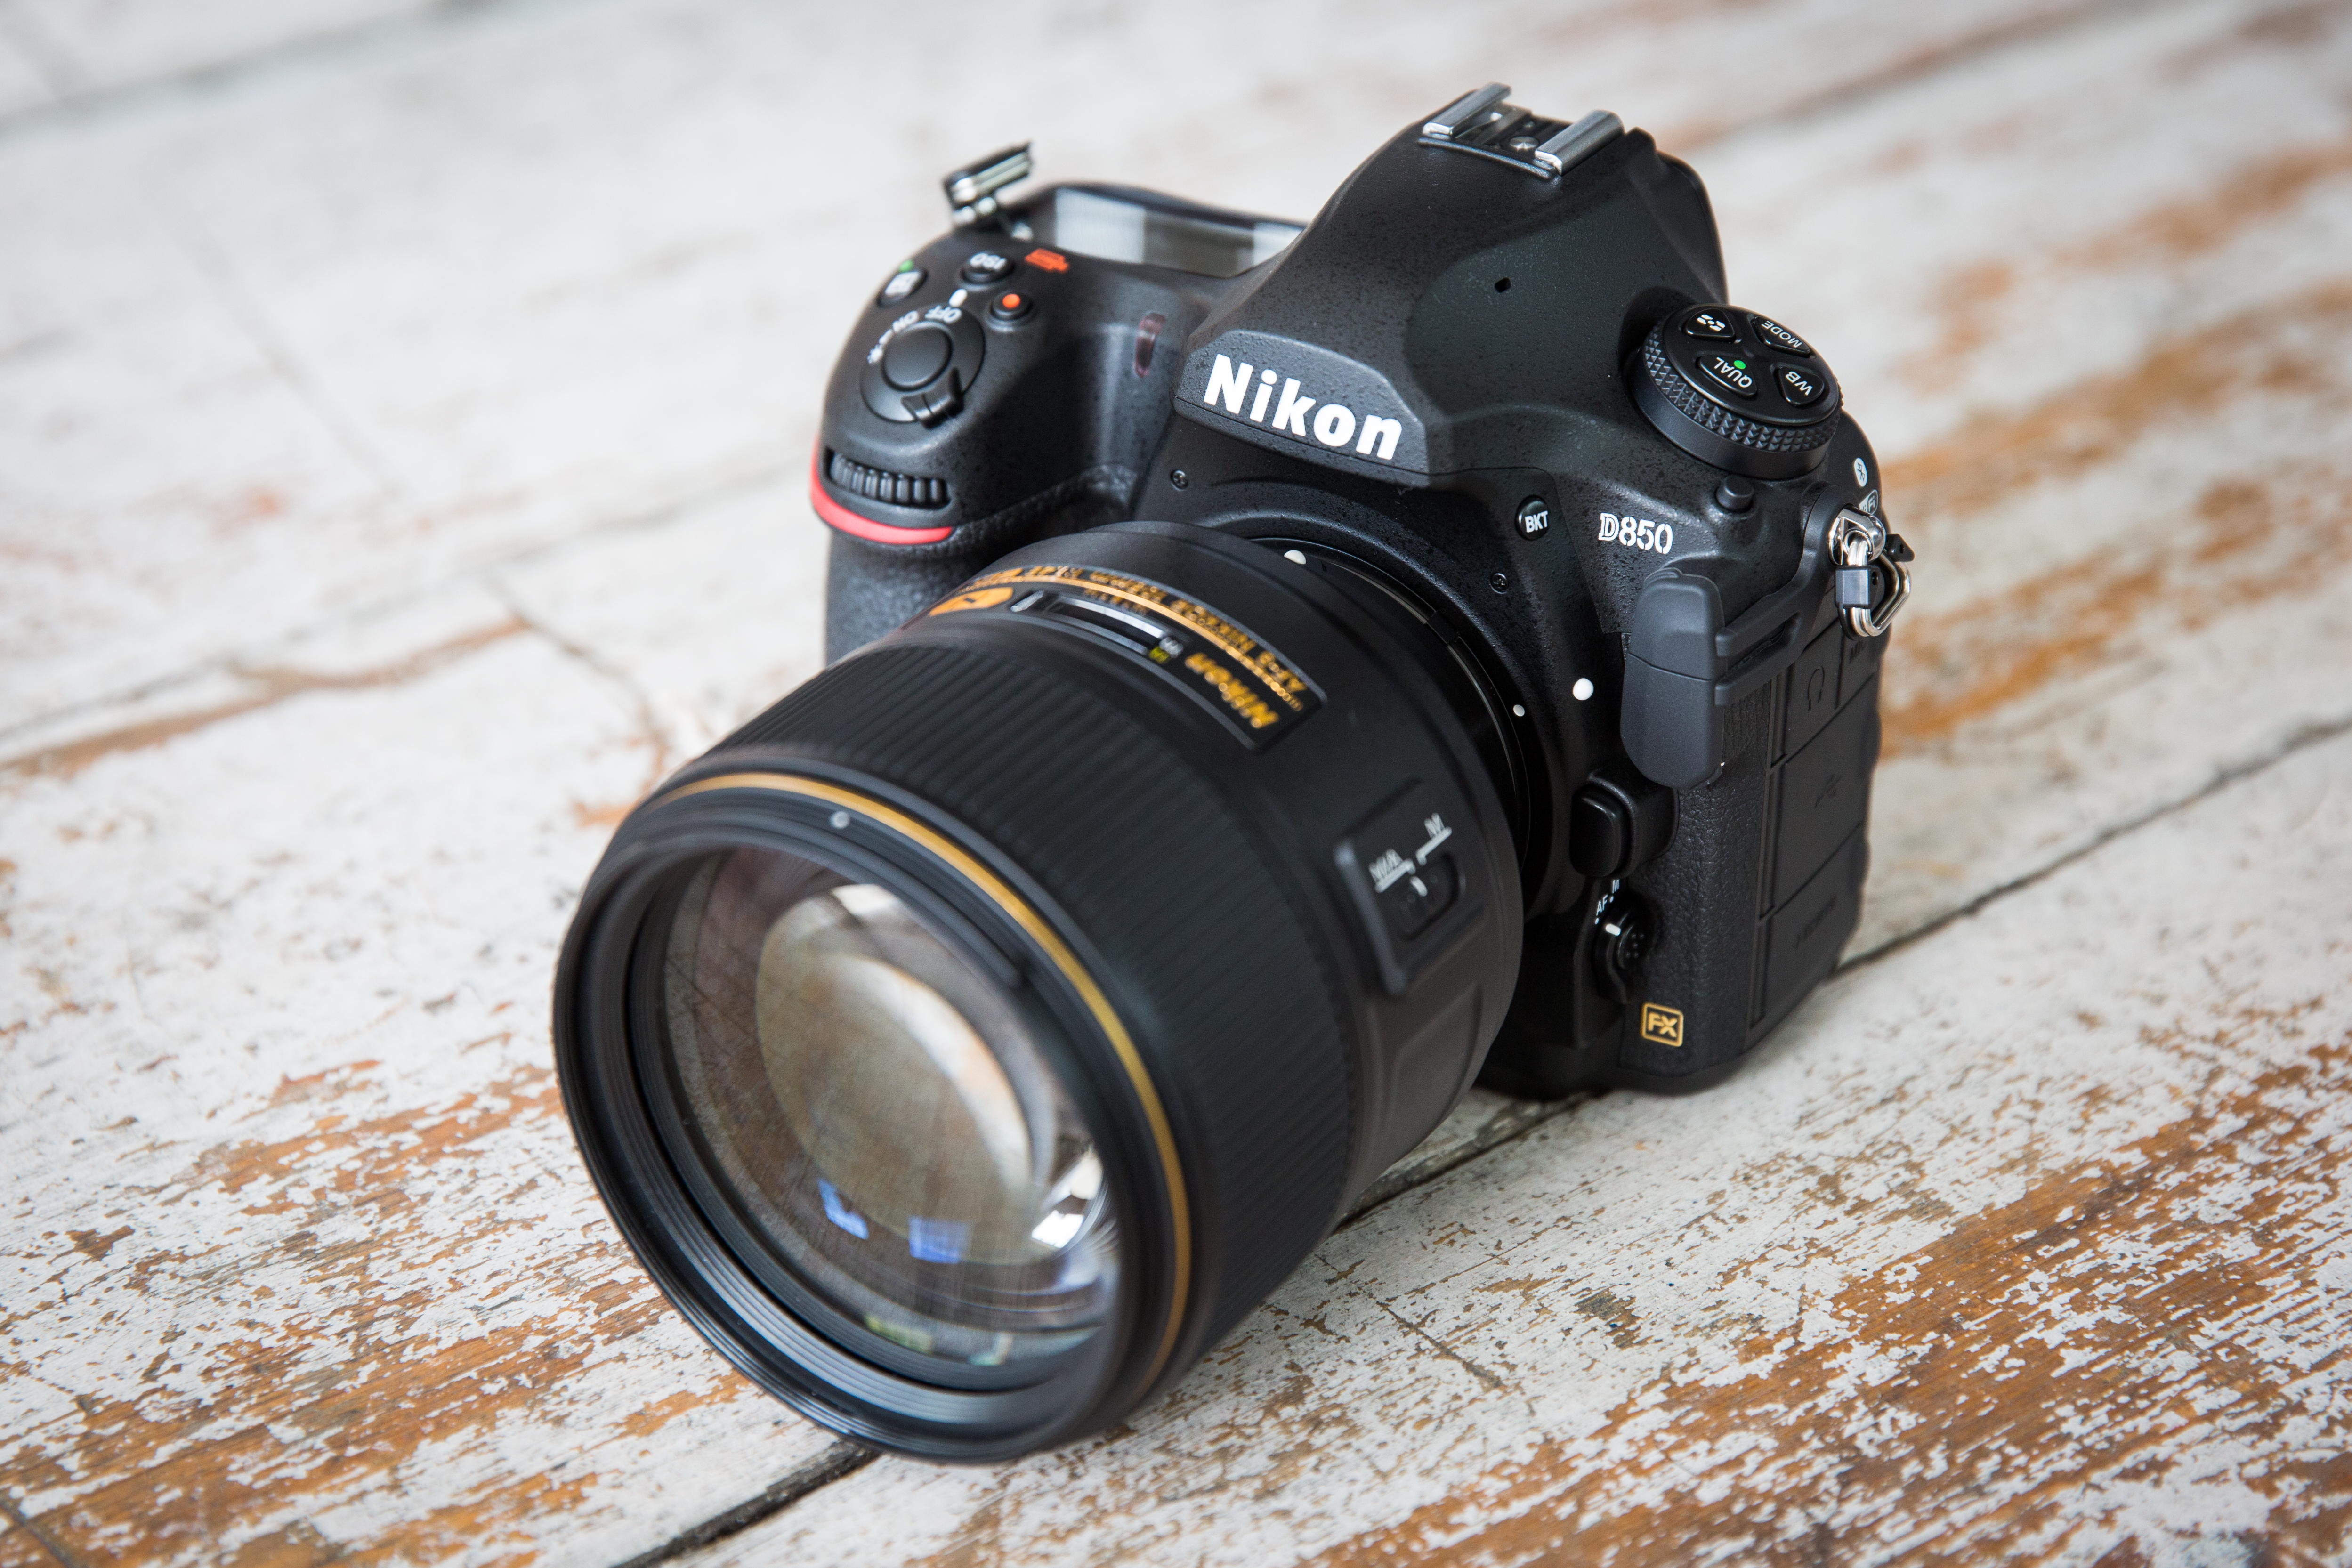 The new Nikon D850 – is this the best all-round DSLR yet?